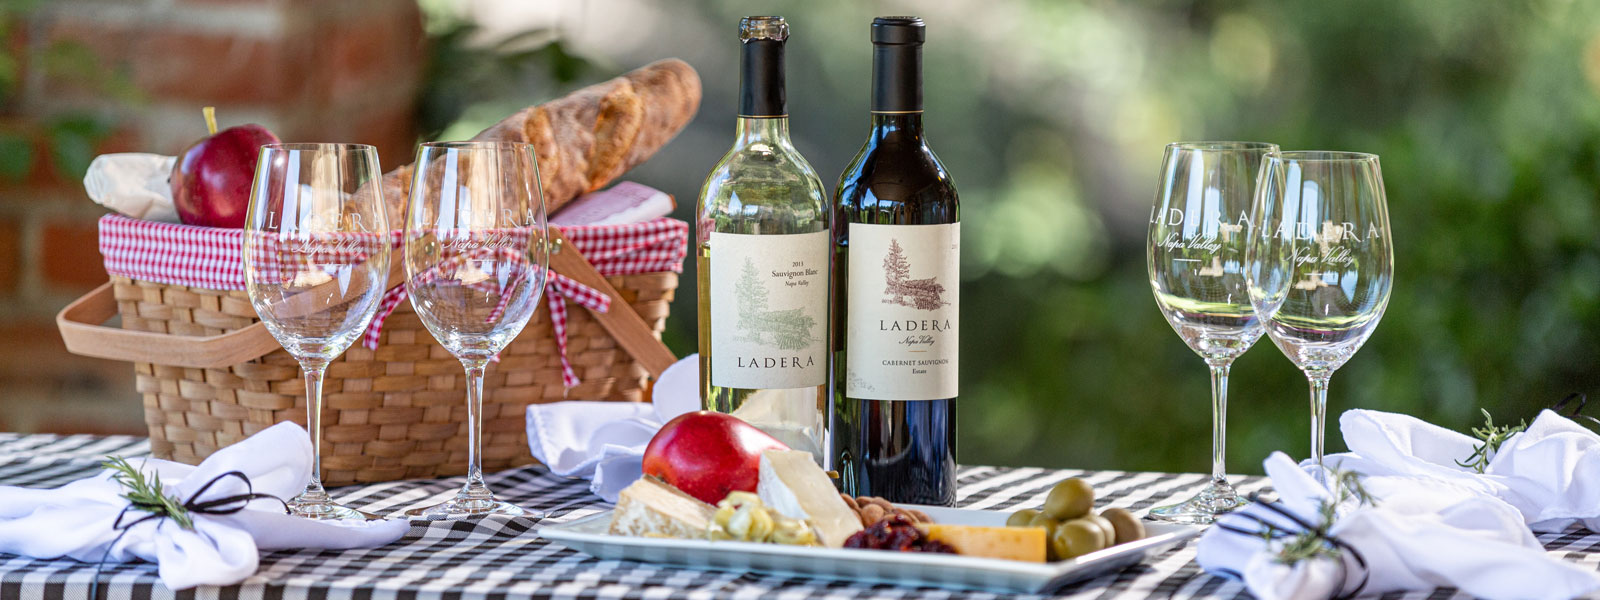 Ladera Vineyards Tasting at Silverado Trail North